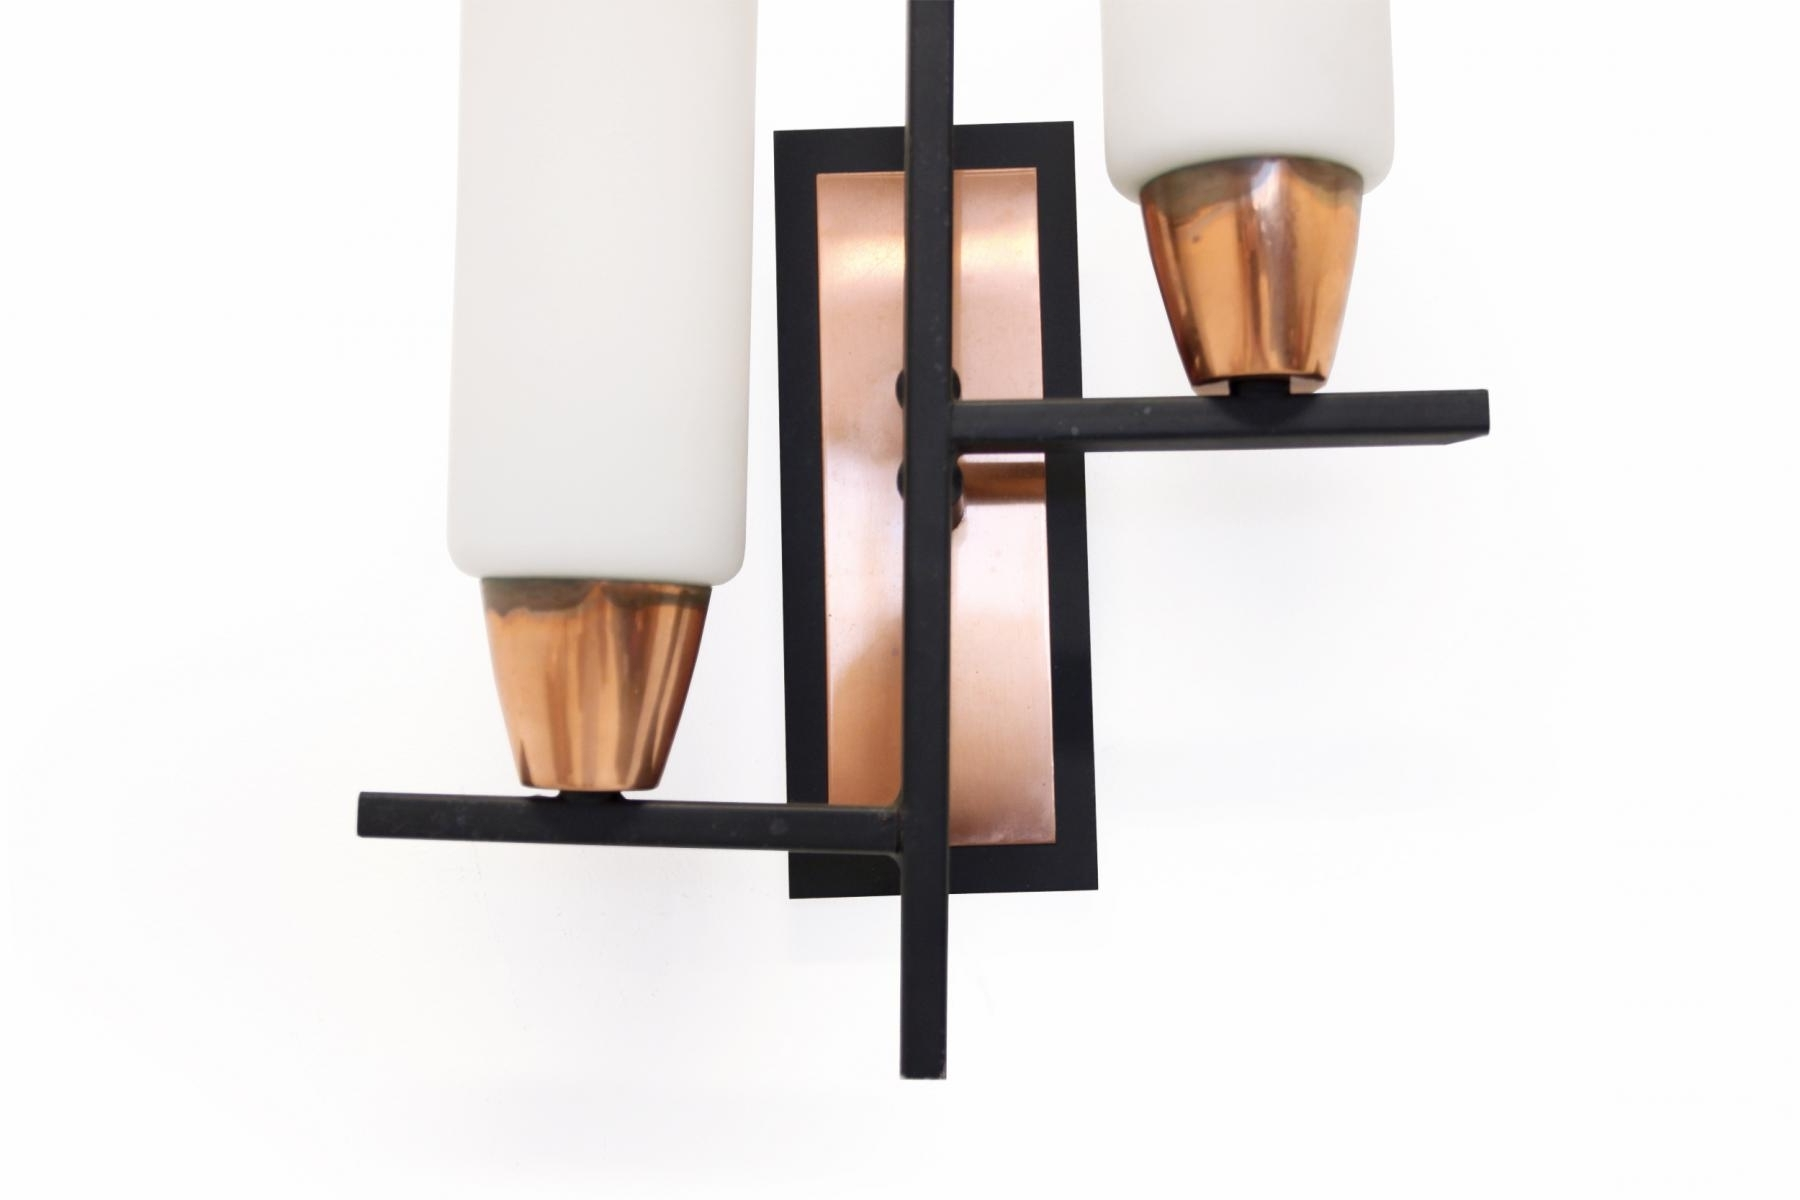 Scandinavian Wall Lights From Pcb, 1960s, Set Of 3 For Sale At Pamono Within Most Up To Date Scandinavian Chandeliers (View 18 of 20)